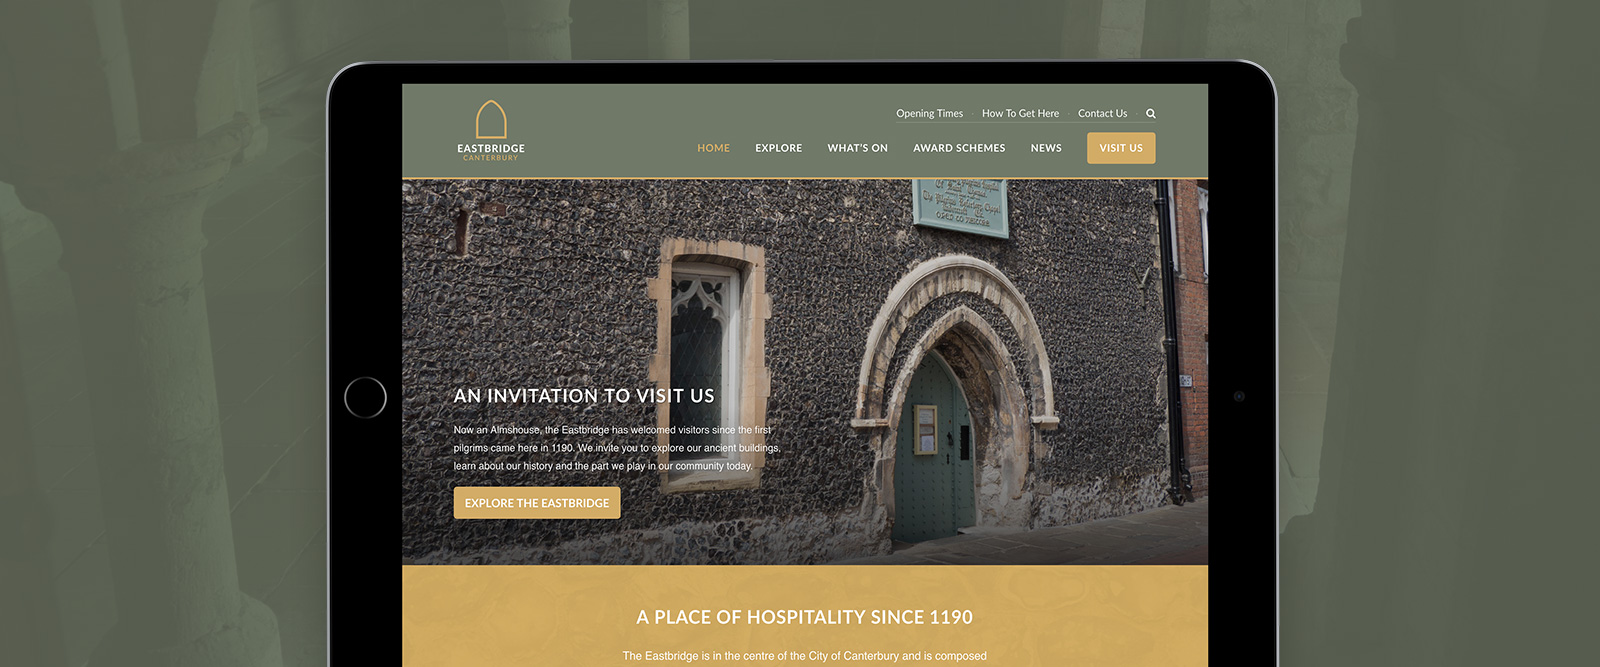 Eastbridge Canterbury website design